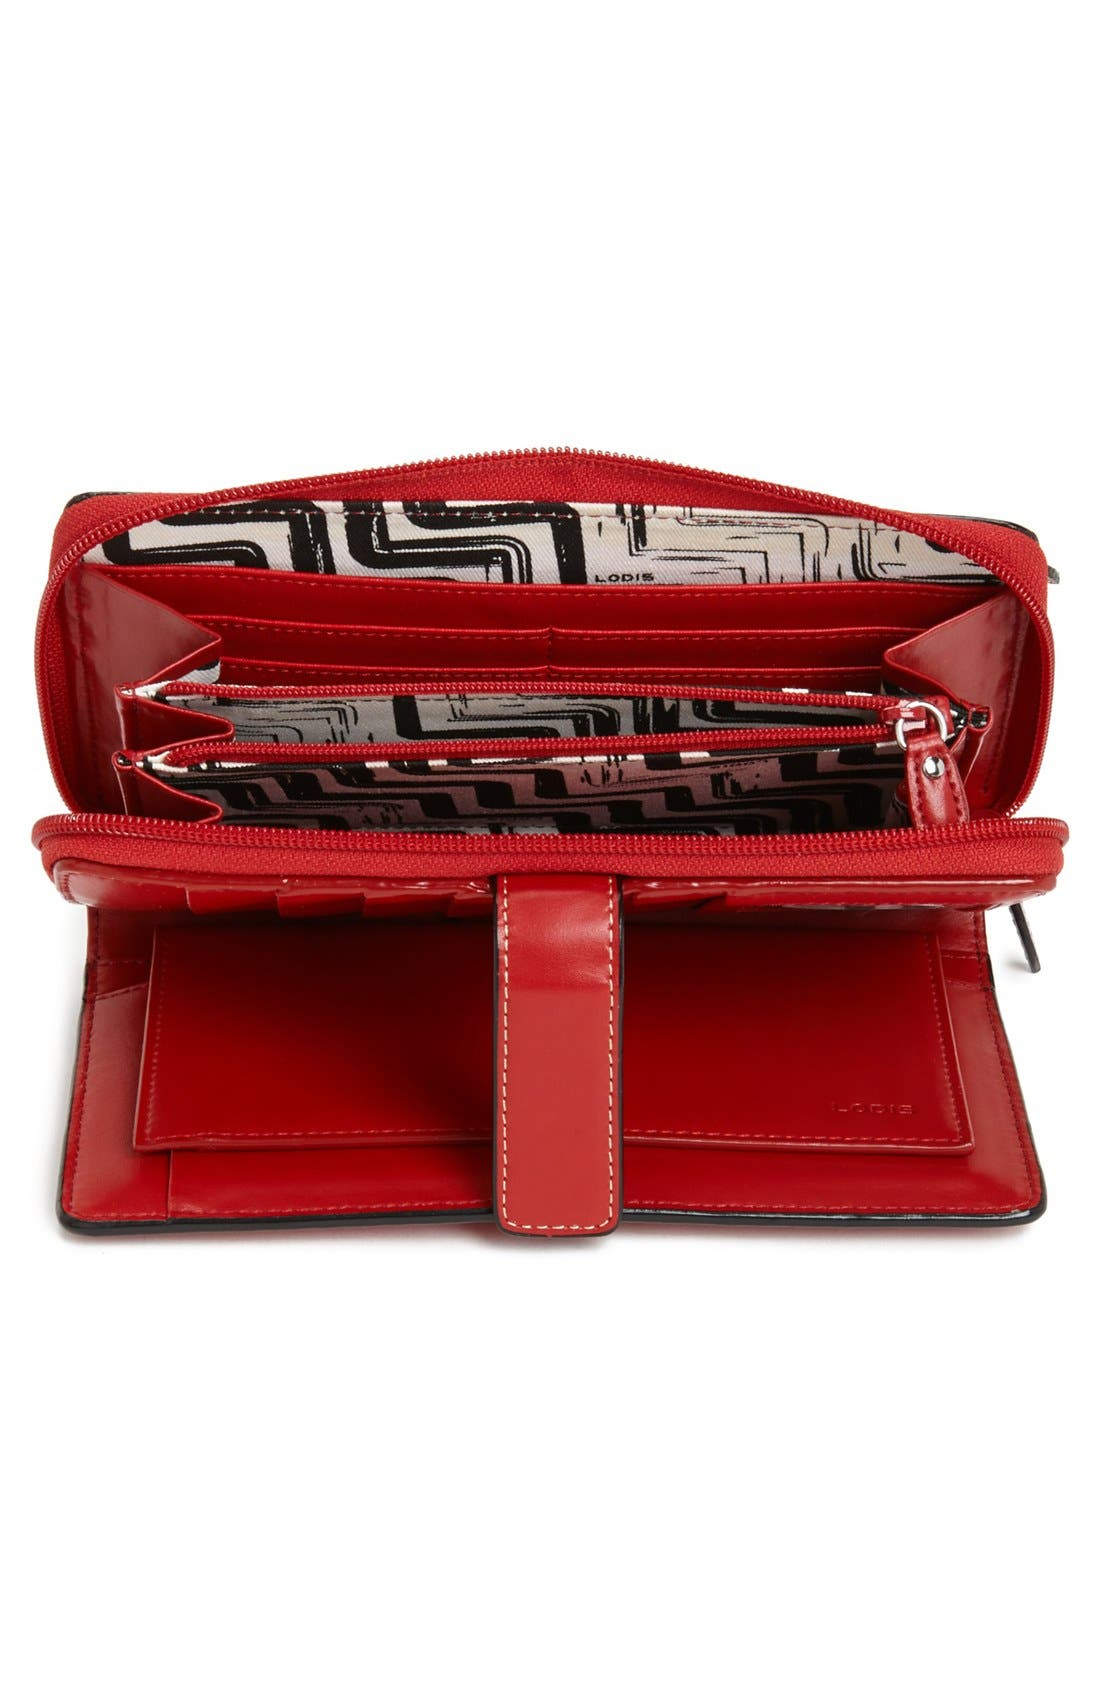 Alternate Image 2  - Lodis 'Audrey - Deluxe' Checkbook Clutch Wallet